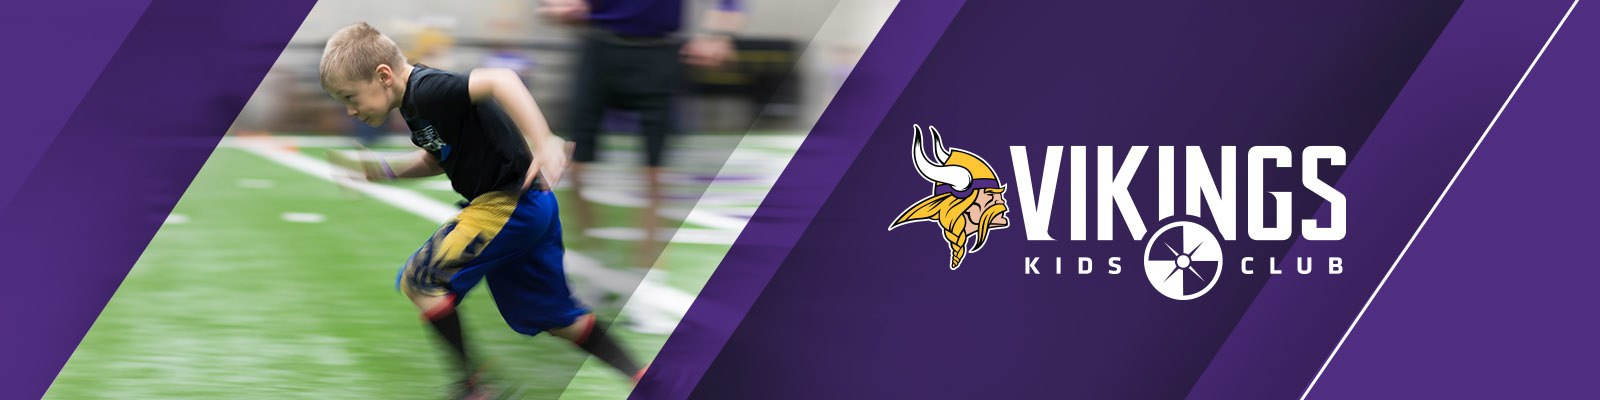 Vikings Kids Club | Minnesota Vikings – vikings com